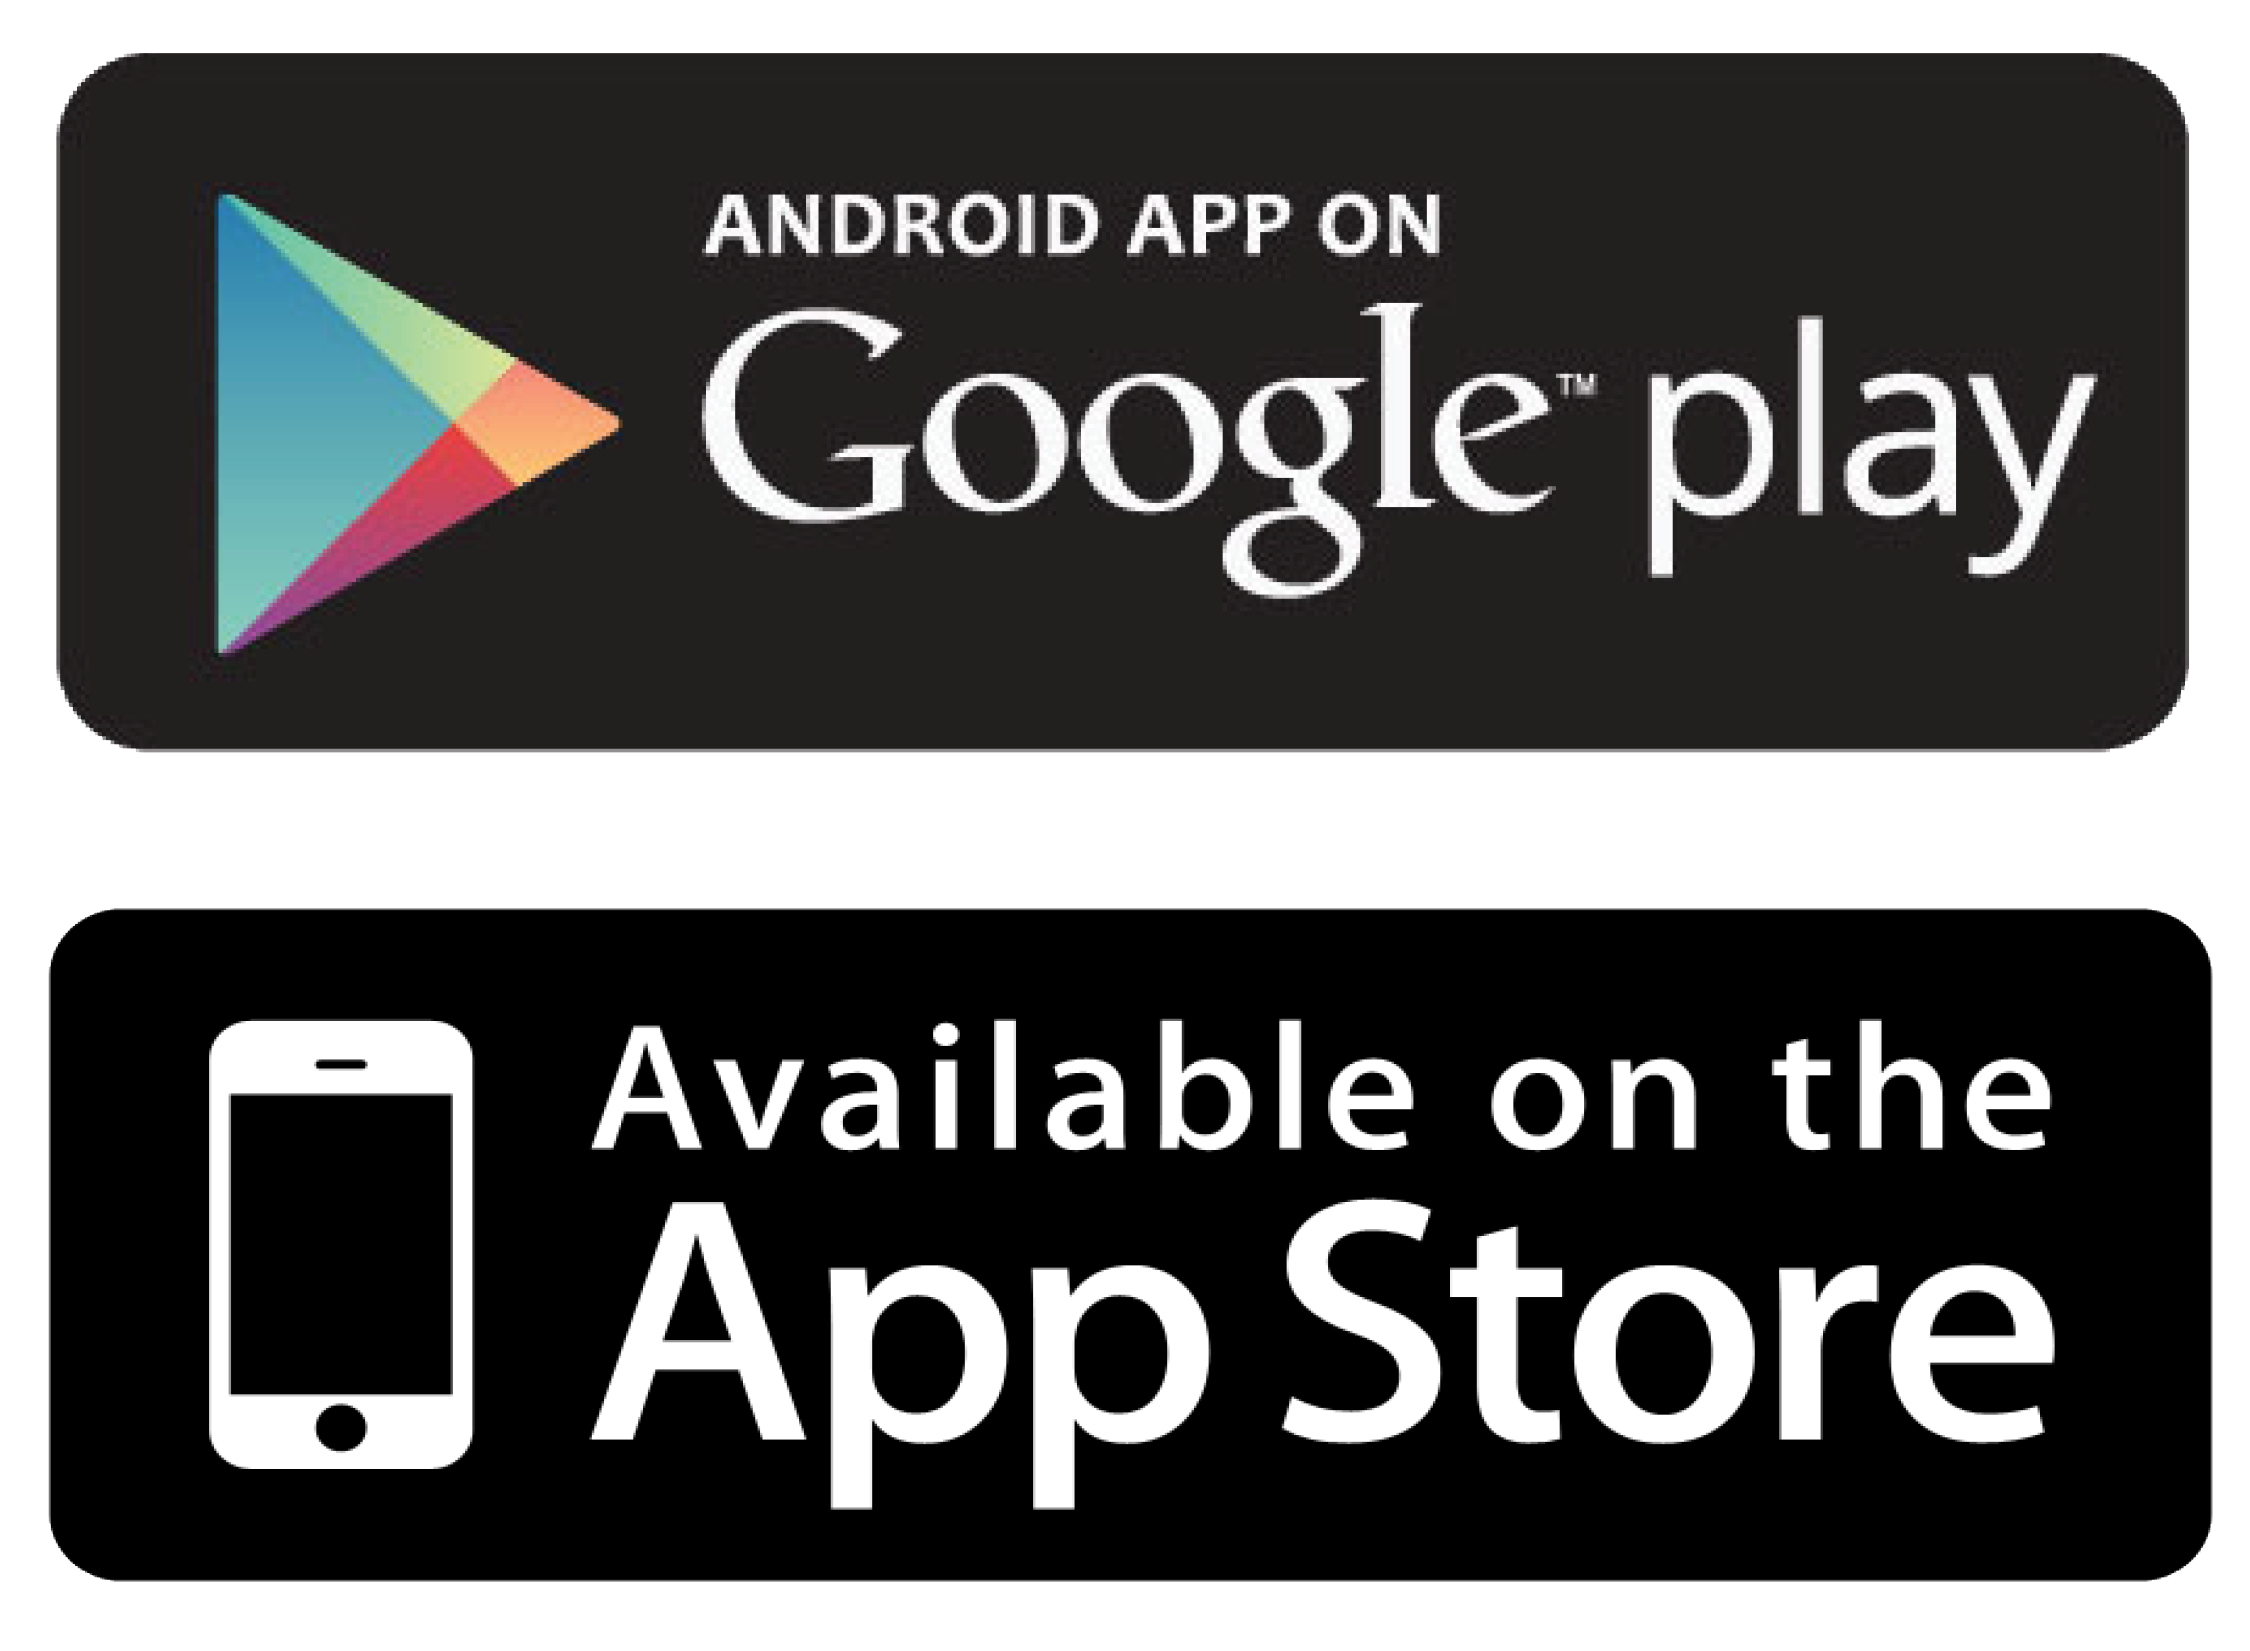 Download Free Play Google App Soon Coming Android Store